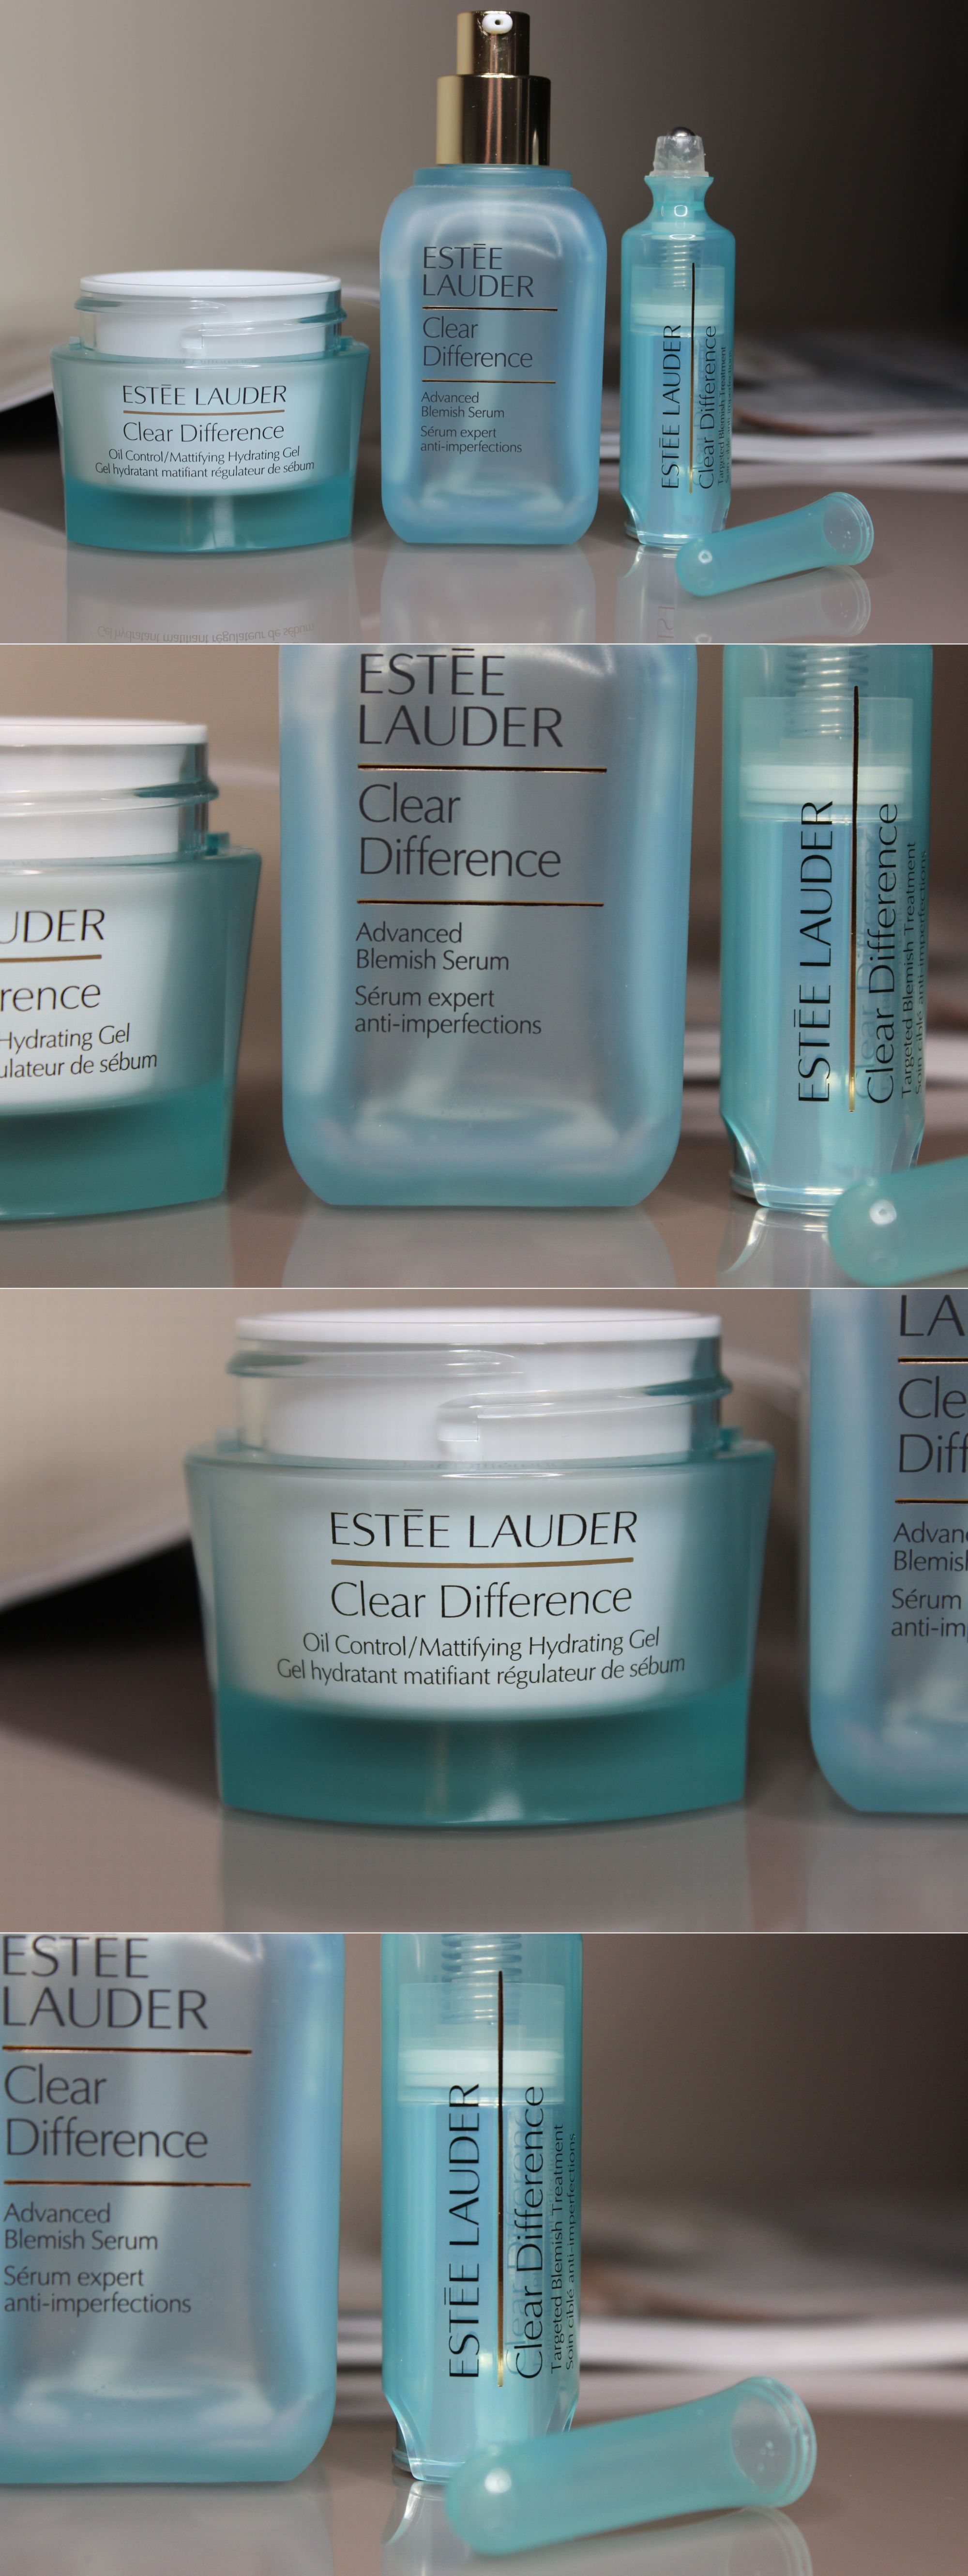 estee-lauder-clear-difference-line